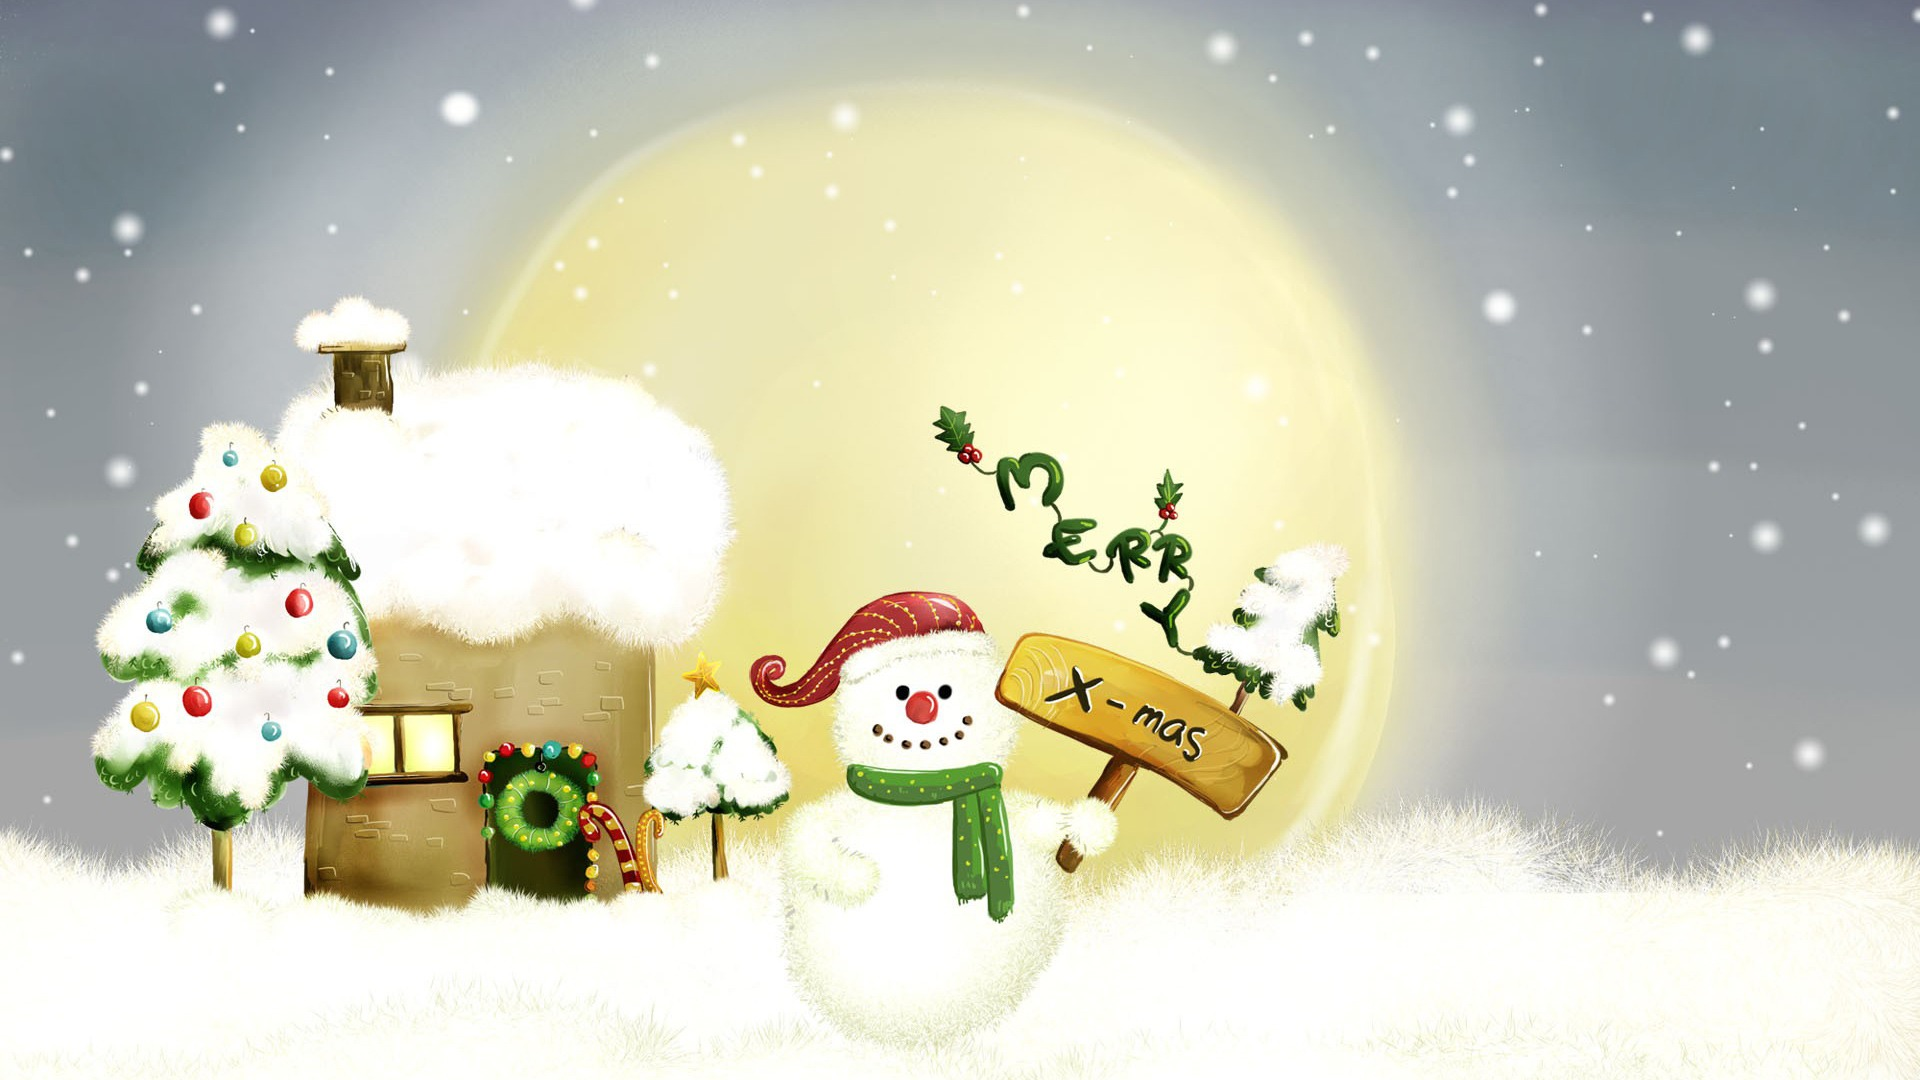 Merry Xmas Wallpaper Christmas Holidays Wallpapers in jpg format for ...